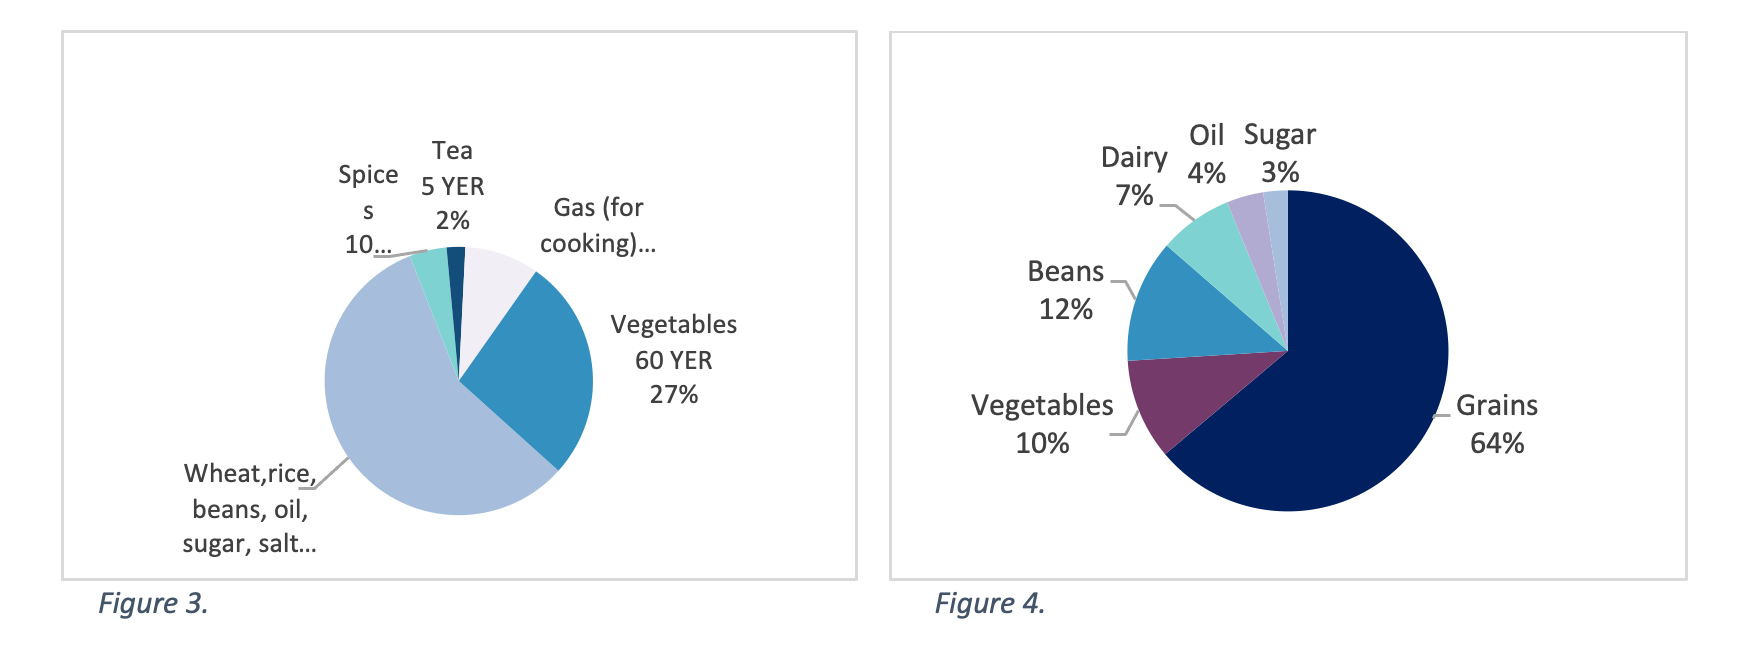 Figure 3. Average meal expenditure per person per day (YER), Source: Navanti  Note: Total average meal expenditure per day per person is 223 YER. Wheat, rice, beans, oil, sugar, and salt were categorized according to  Minimum Food Basket (MFB)  definition, while all other items were categorized separately.  Figure 4. Portion of diet by food type (% by weight in grams), Source: Navanti